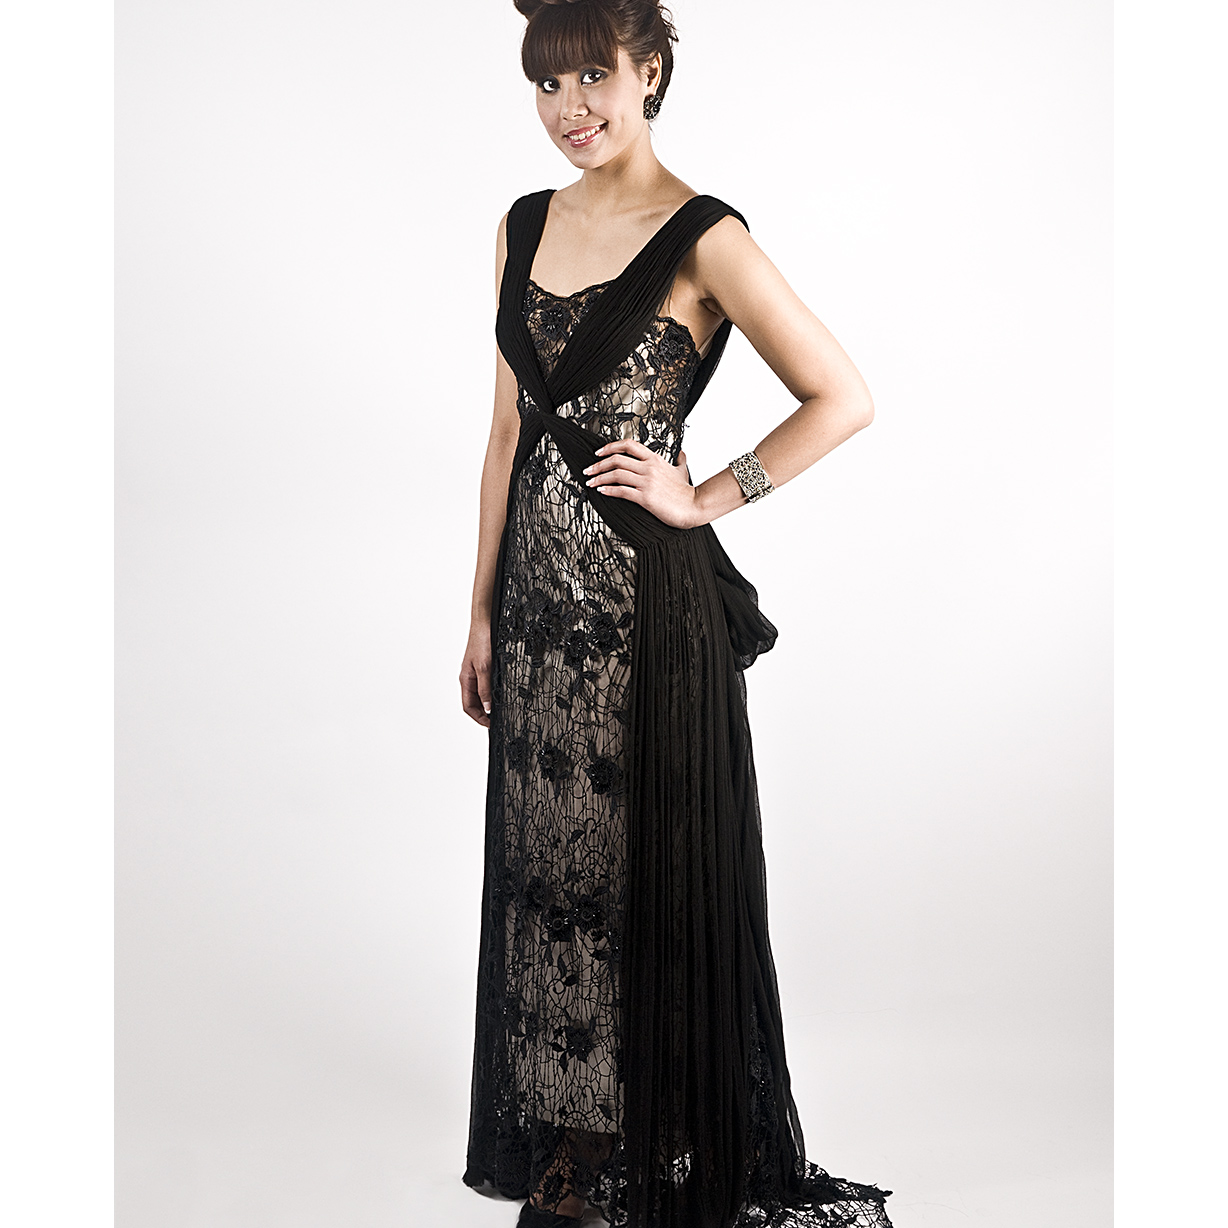 Black Spider Netting Long Gown large 1